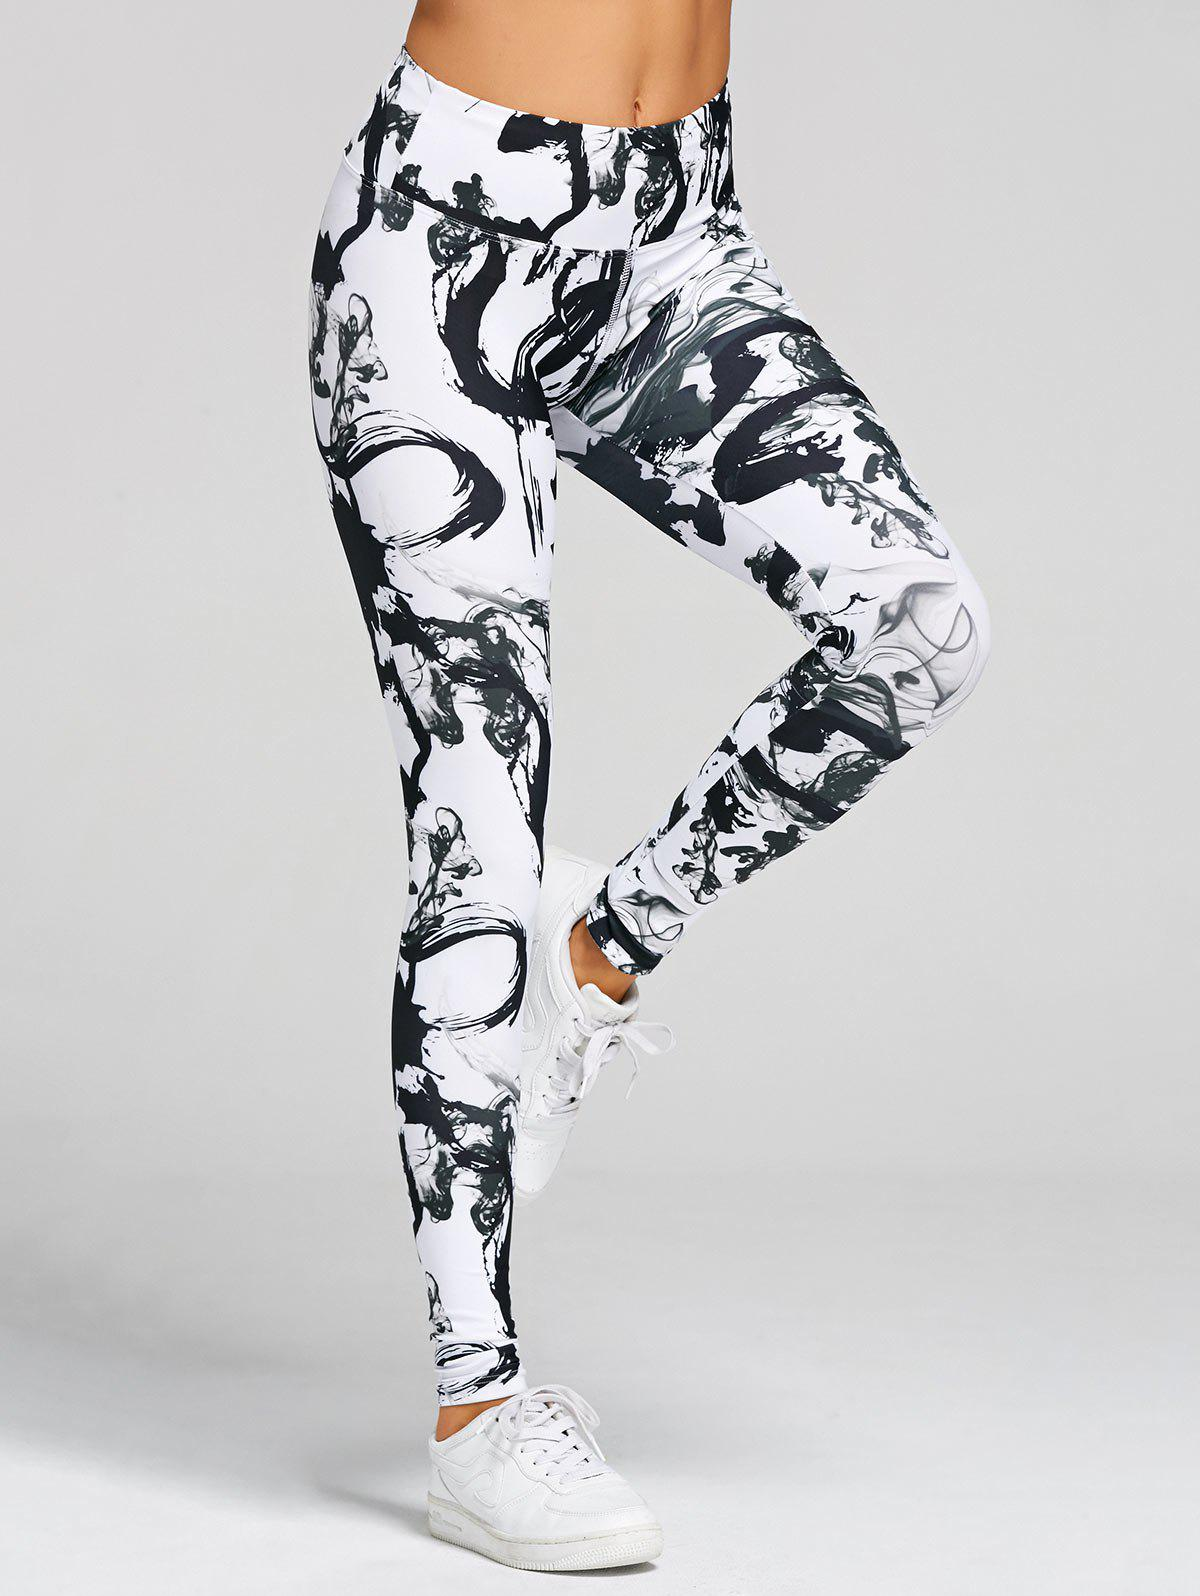 High Waisted Printed Skinny Yoga Leggings - WHITE/BLACK M